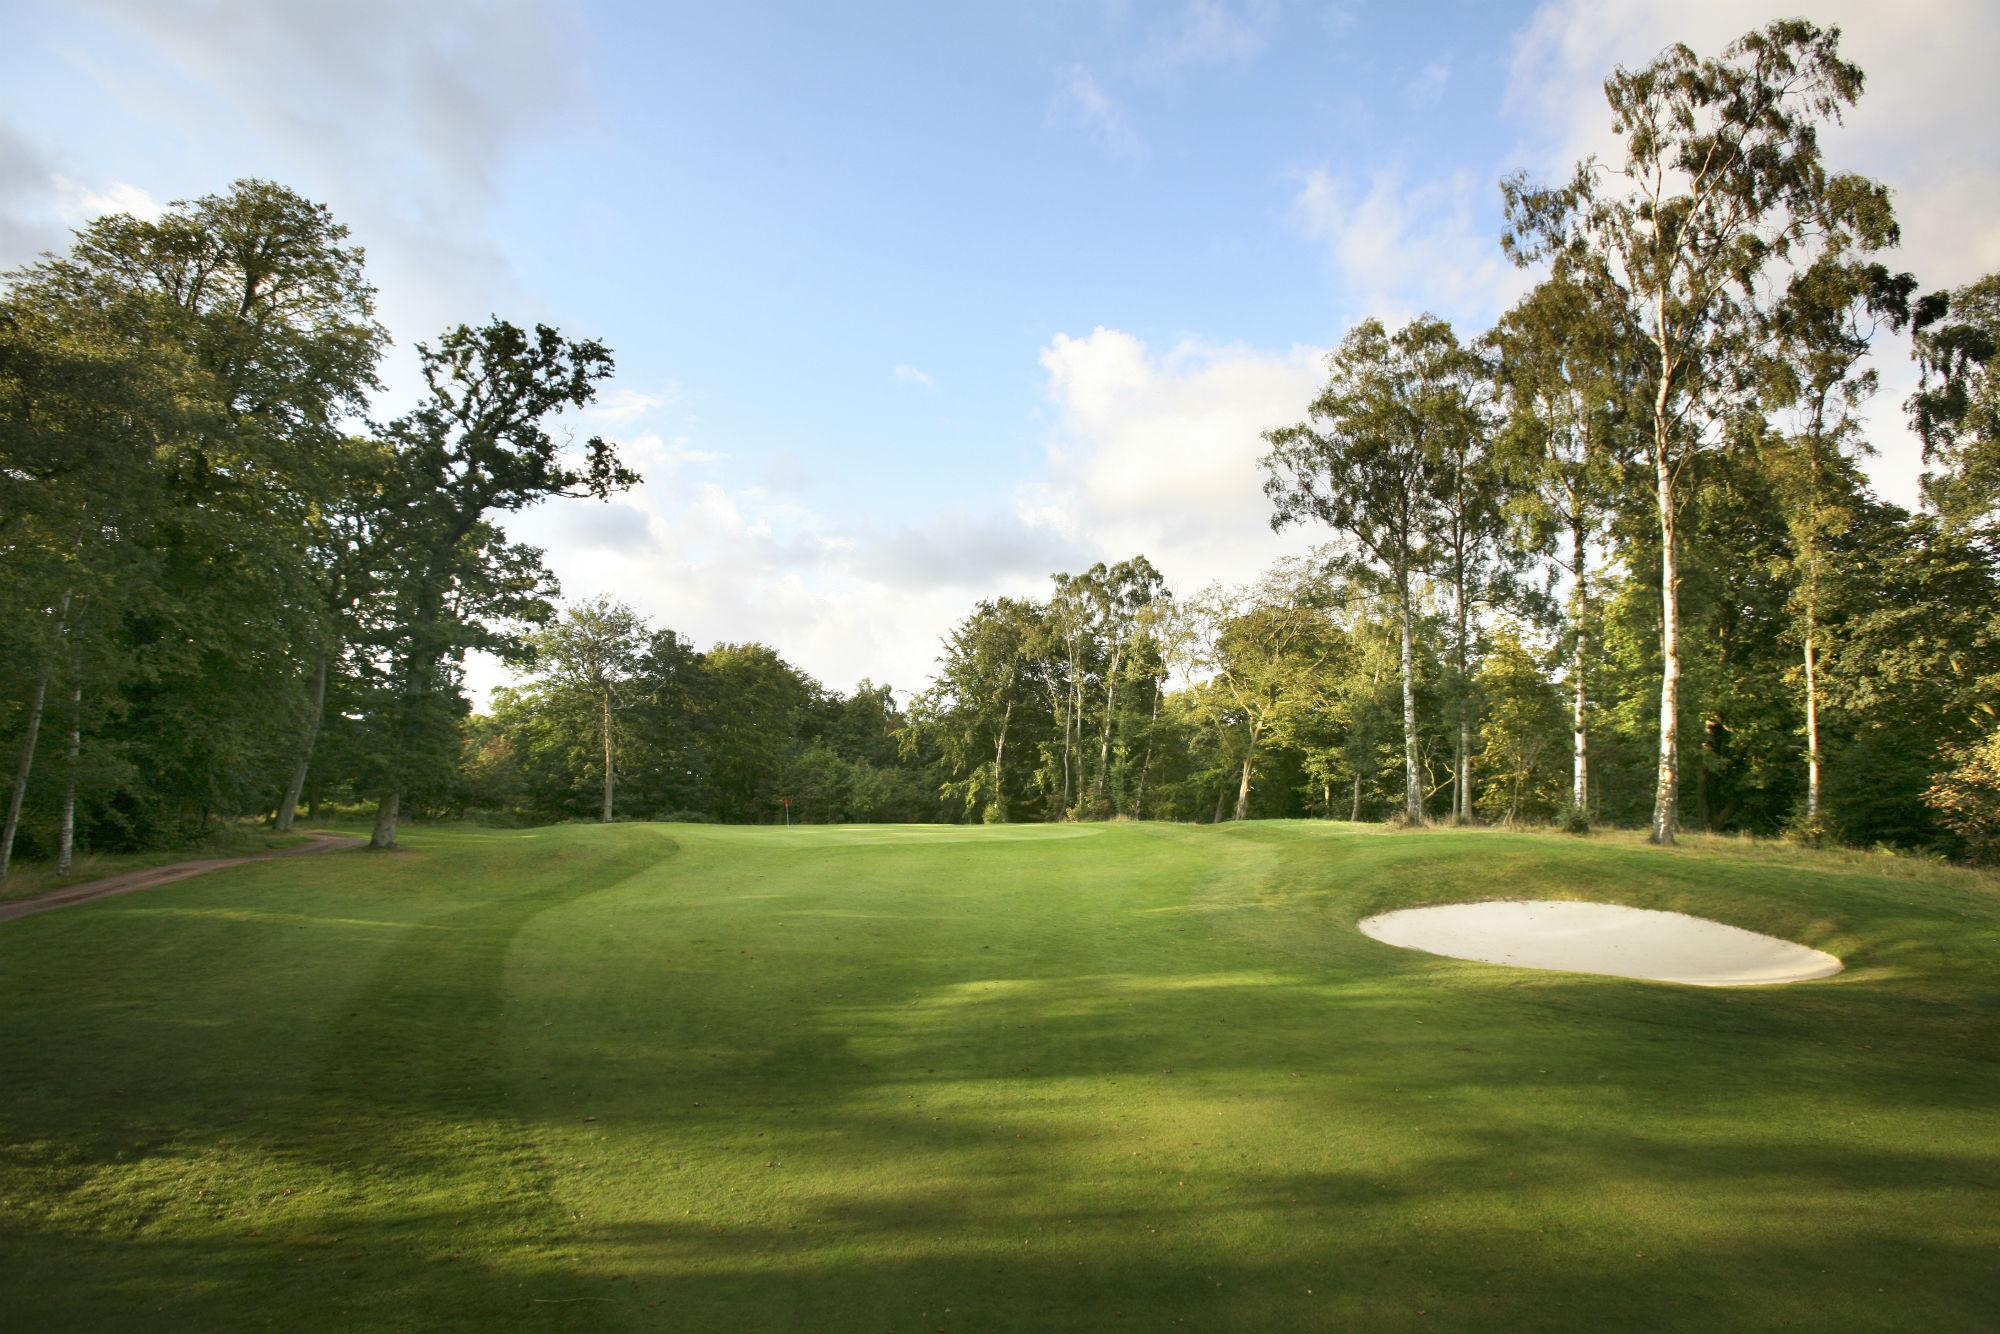 The Dalmahoy Golf Course's lovely golf course situated in dazzling Scotland.